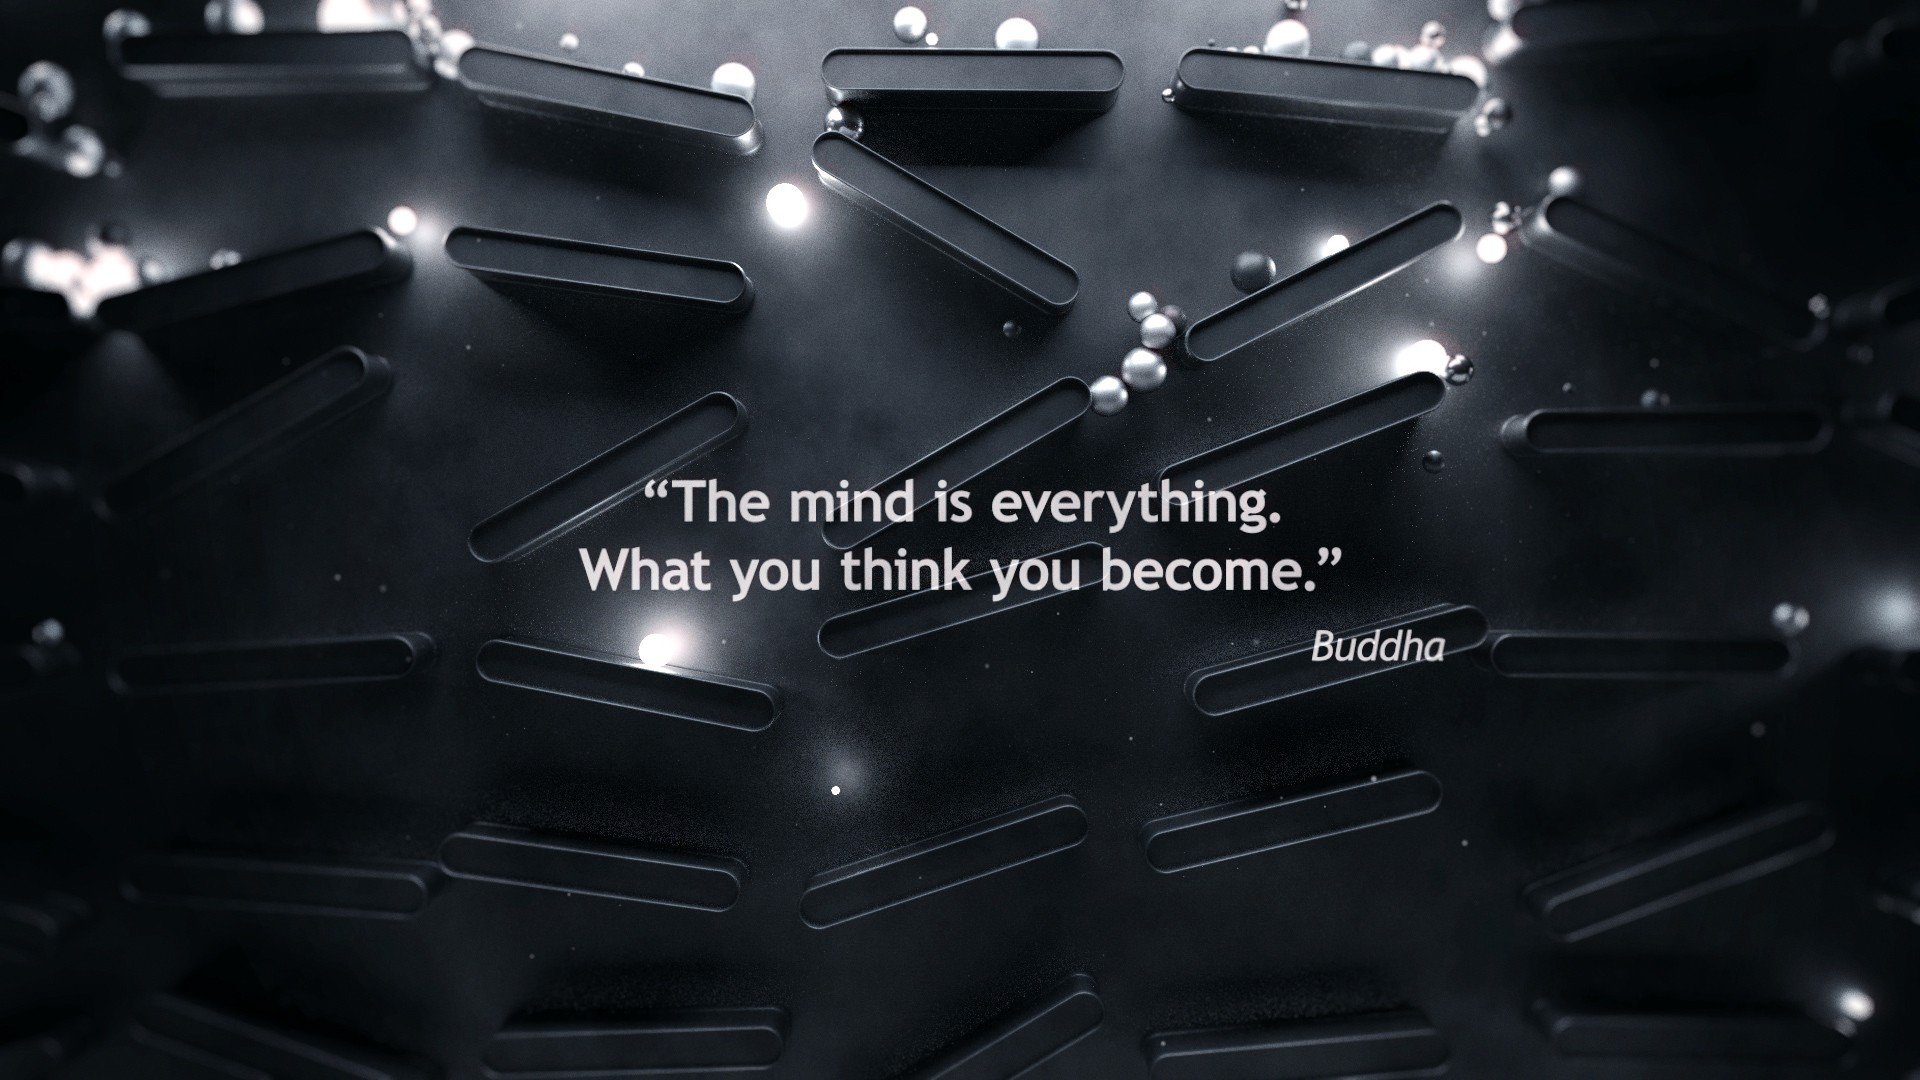 Cute Quote Wallpapers For Iphone 4 Popular Buddha Quotes Wallpapers Hd Wallpapers Id 22350